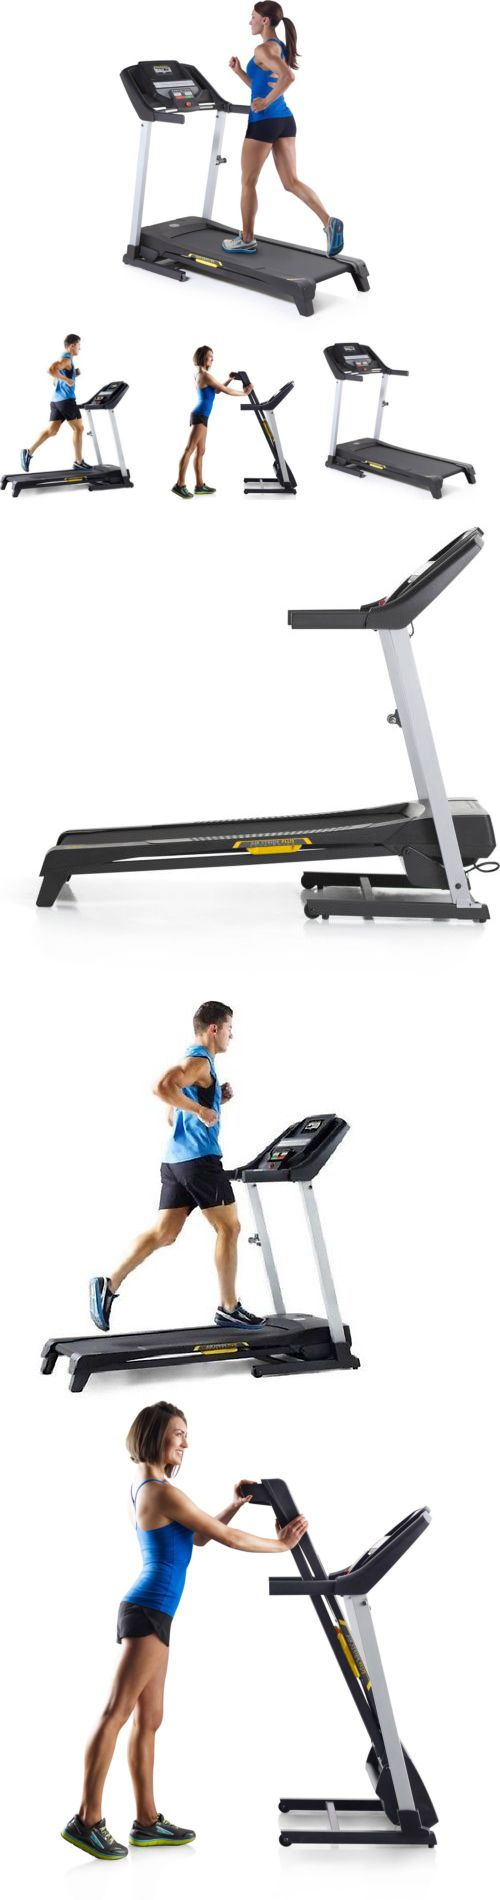 Treadmills 15280: Treadmill Machine Folding Portable Power Incline Fitness Home Gym Exercise New -> BUY IT NOW ONLY: $507.99 on eBay!